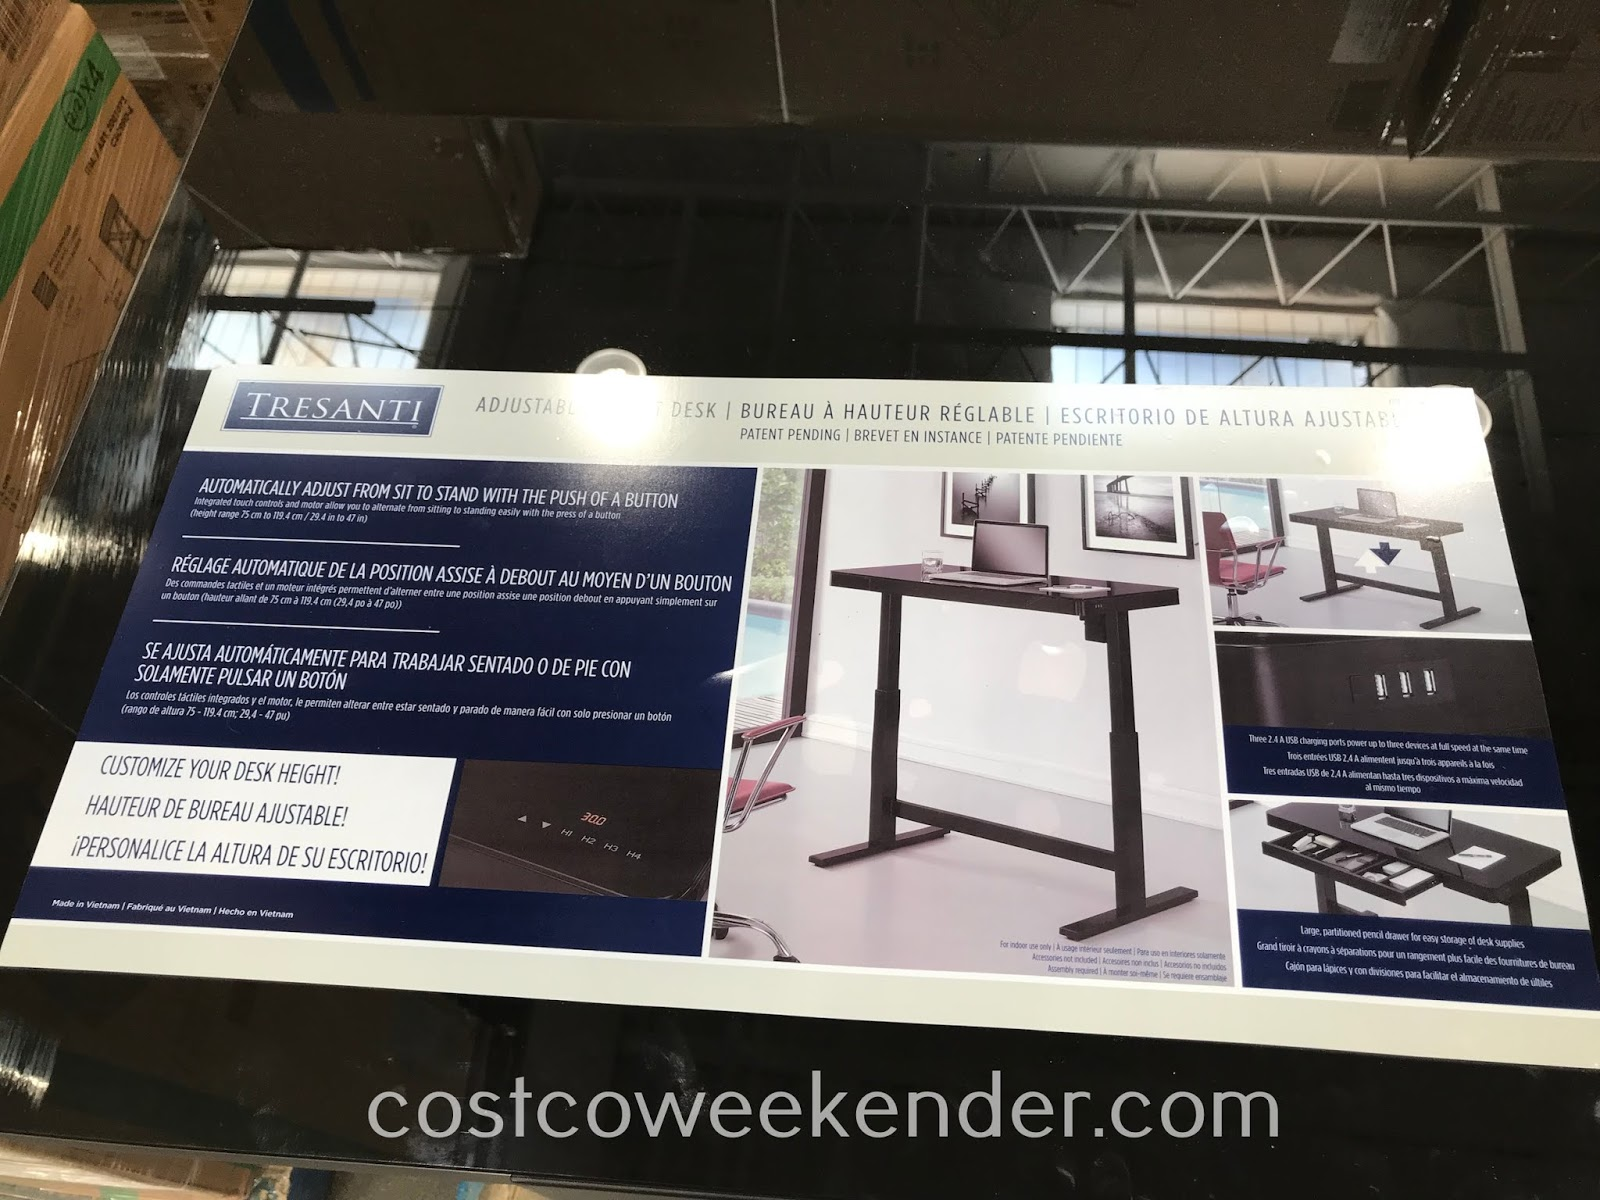 Costco 1334060 - Don't be sitting all day with the Tresanti Adjustable Height Desk